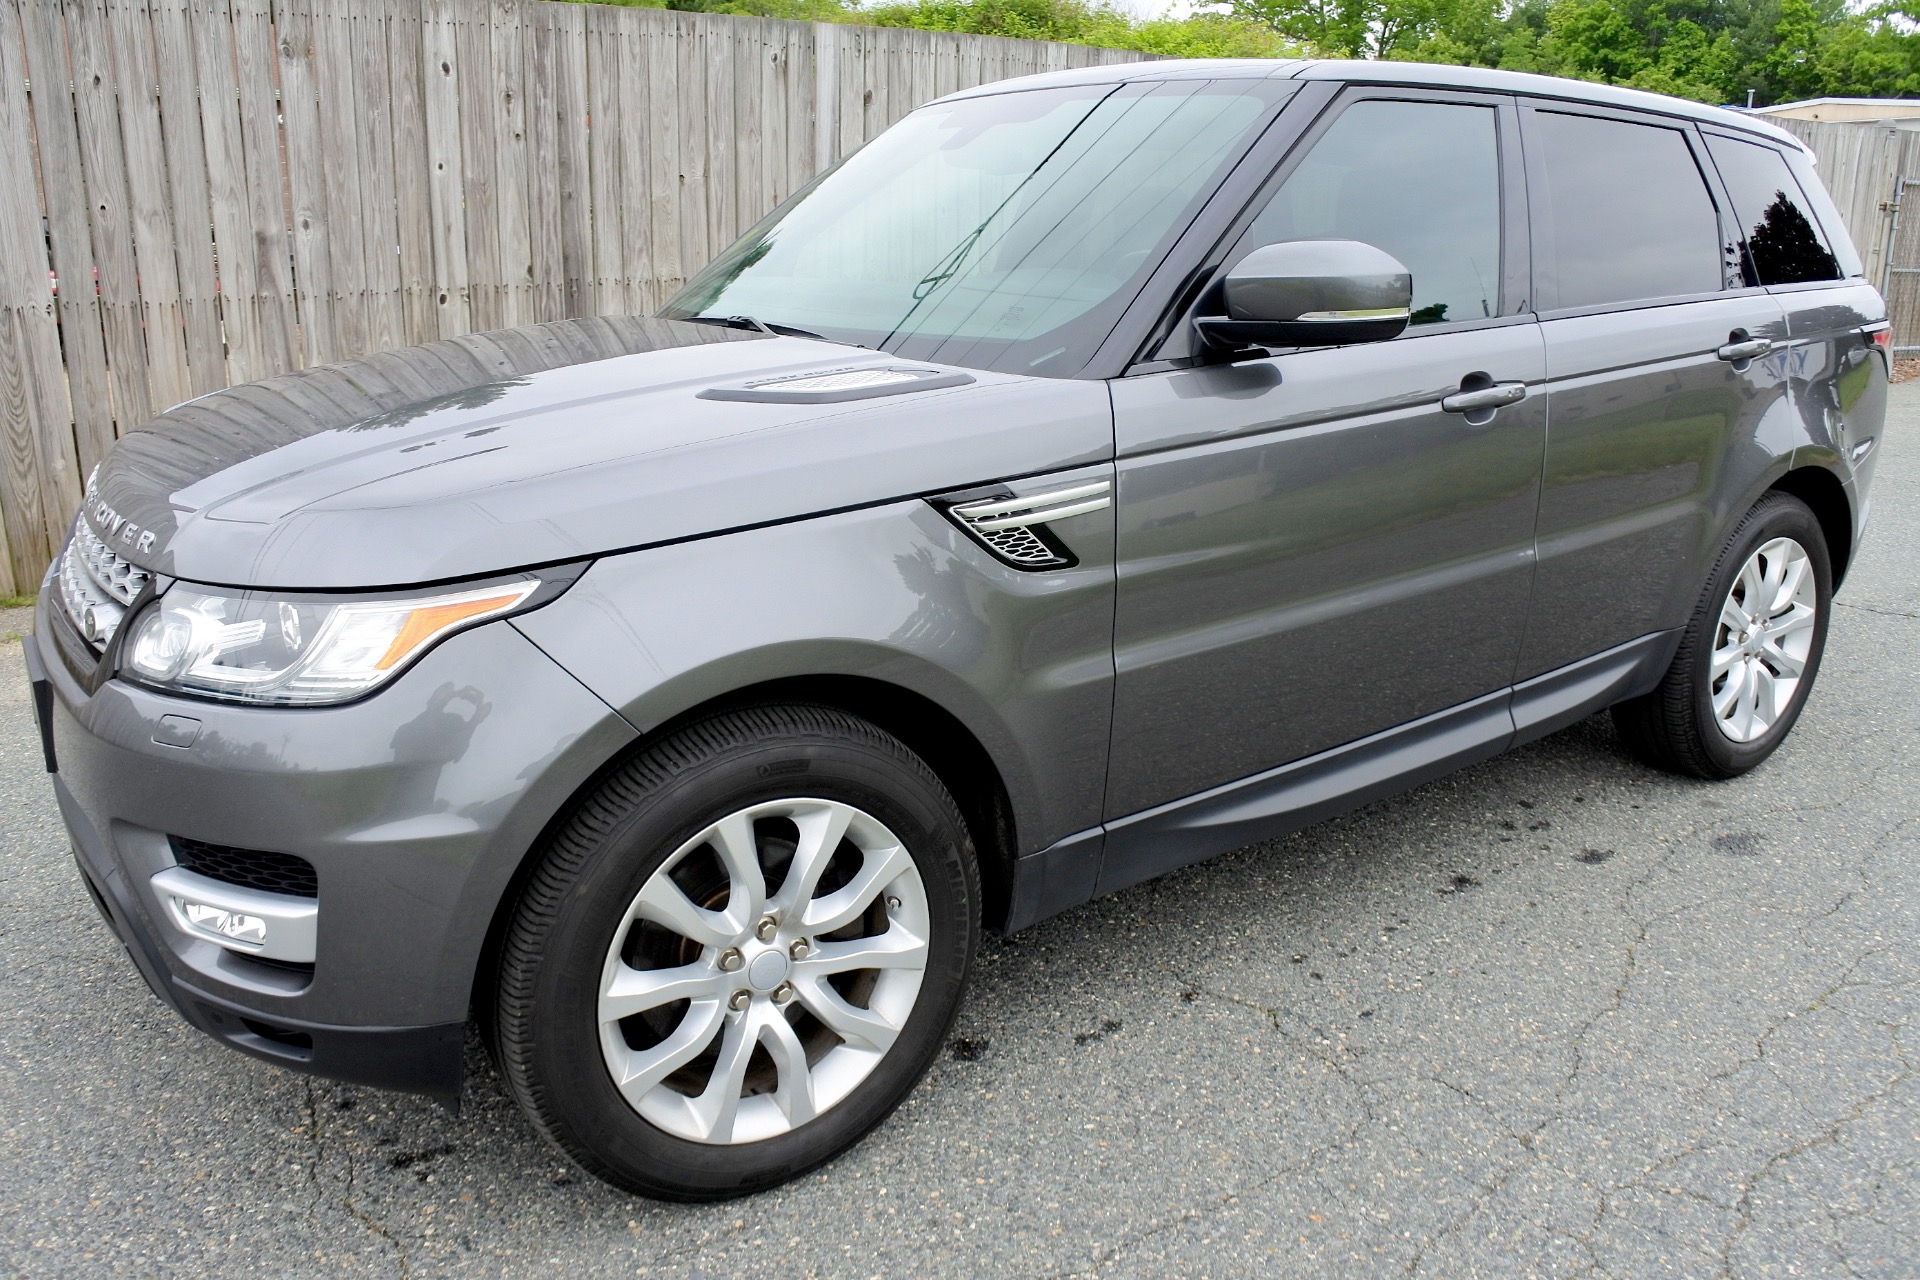 Used 2015 Land Rover Range Rover Sport 4WD 4dr HSE Used 2015 Land Rover Range Rover Sport 4WD 4dr HSE for sale  at Metro West Motorcars LLC in Shrewsbury MA 1